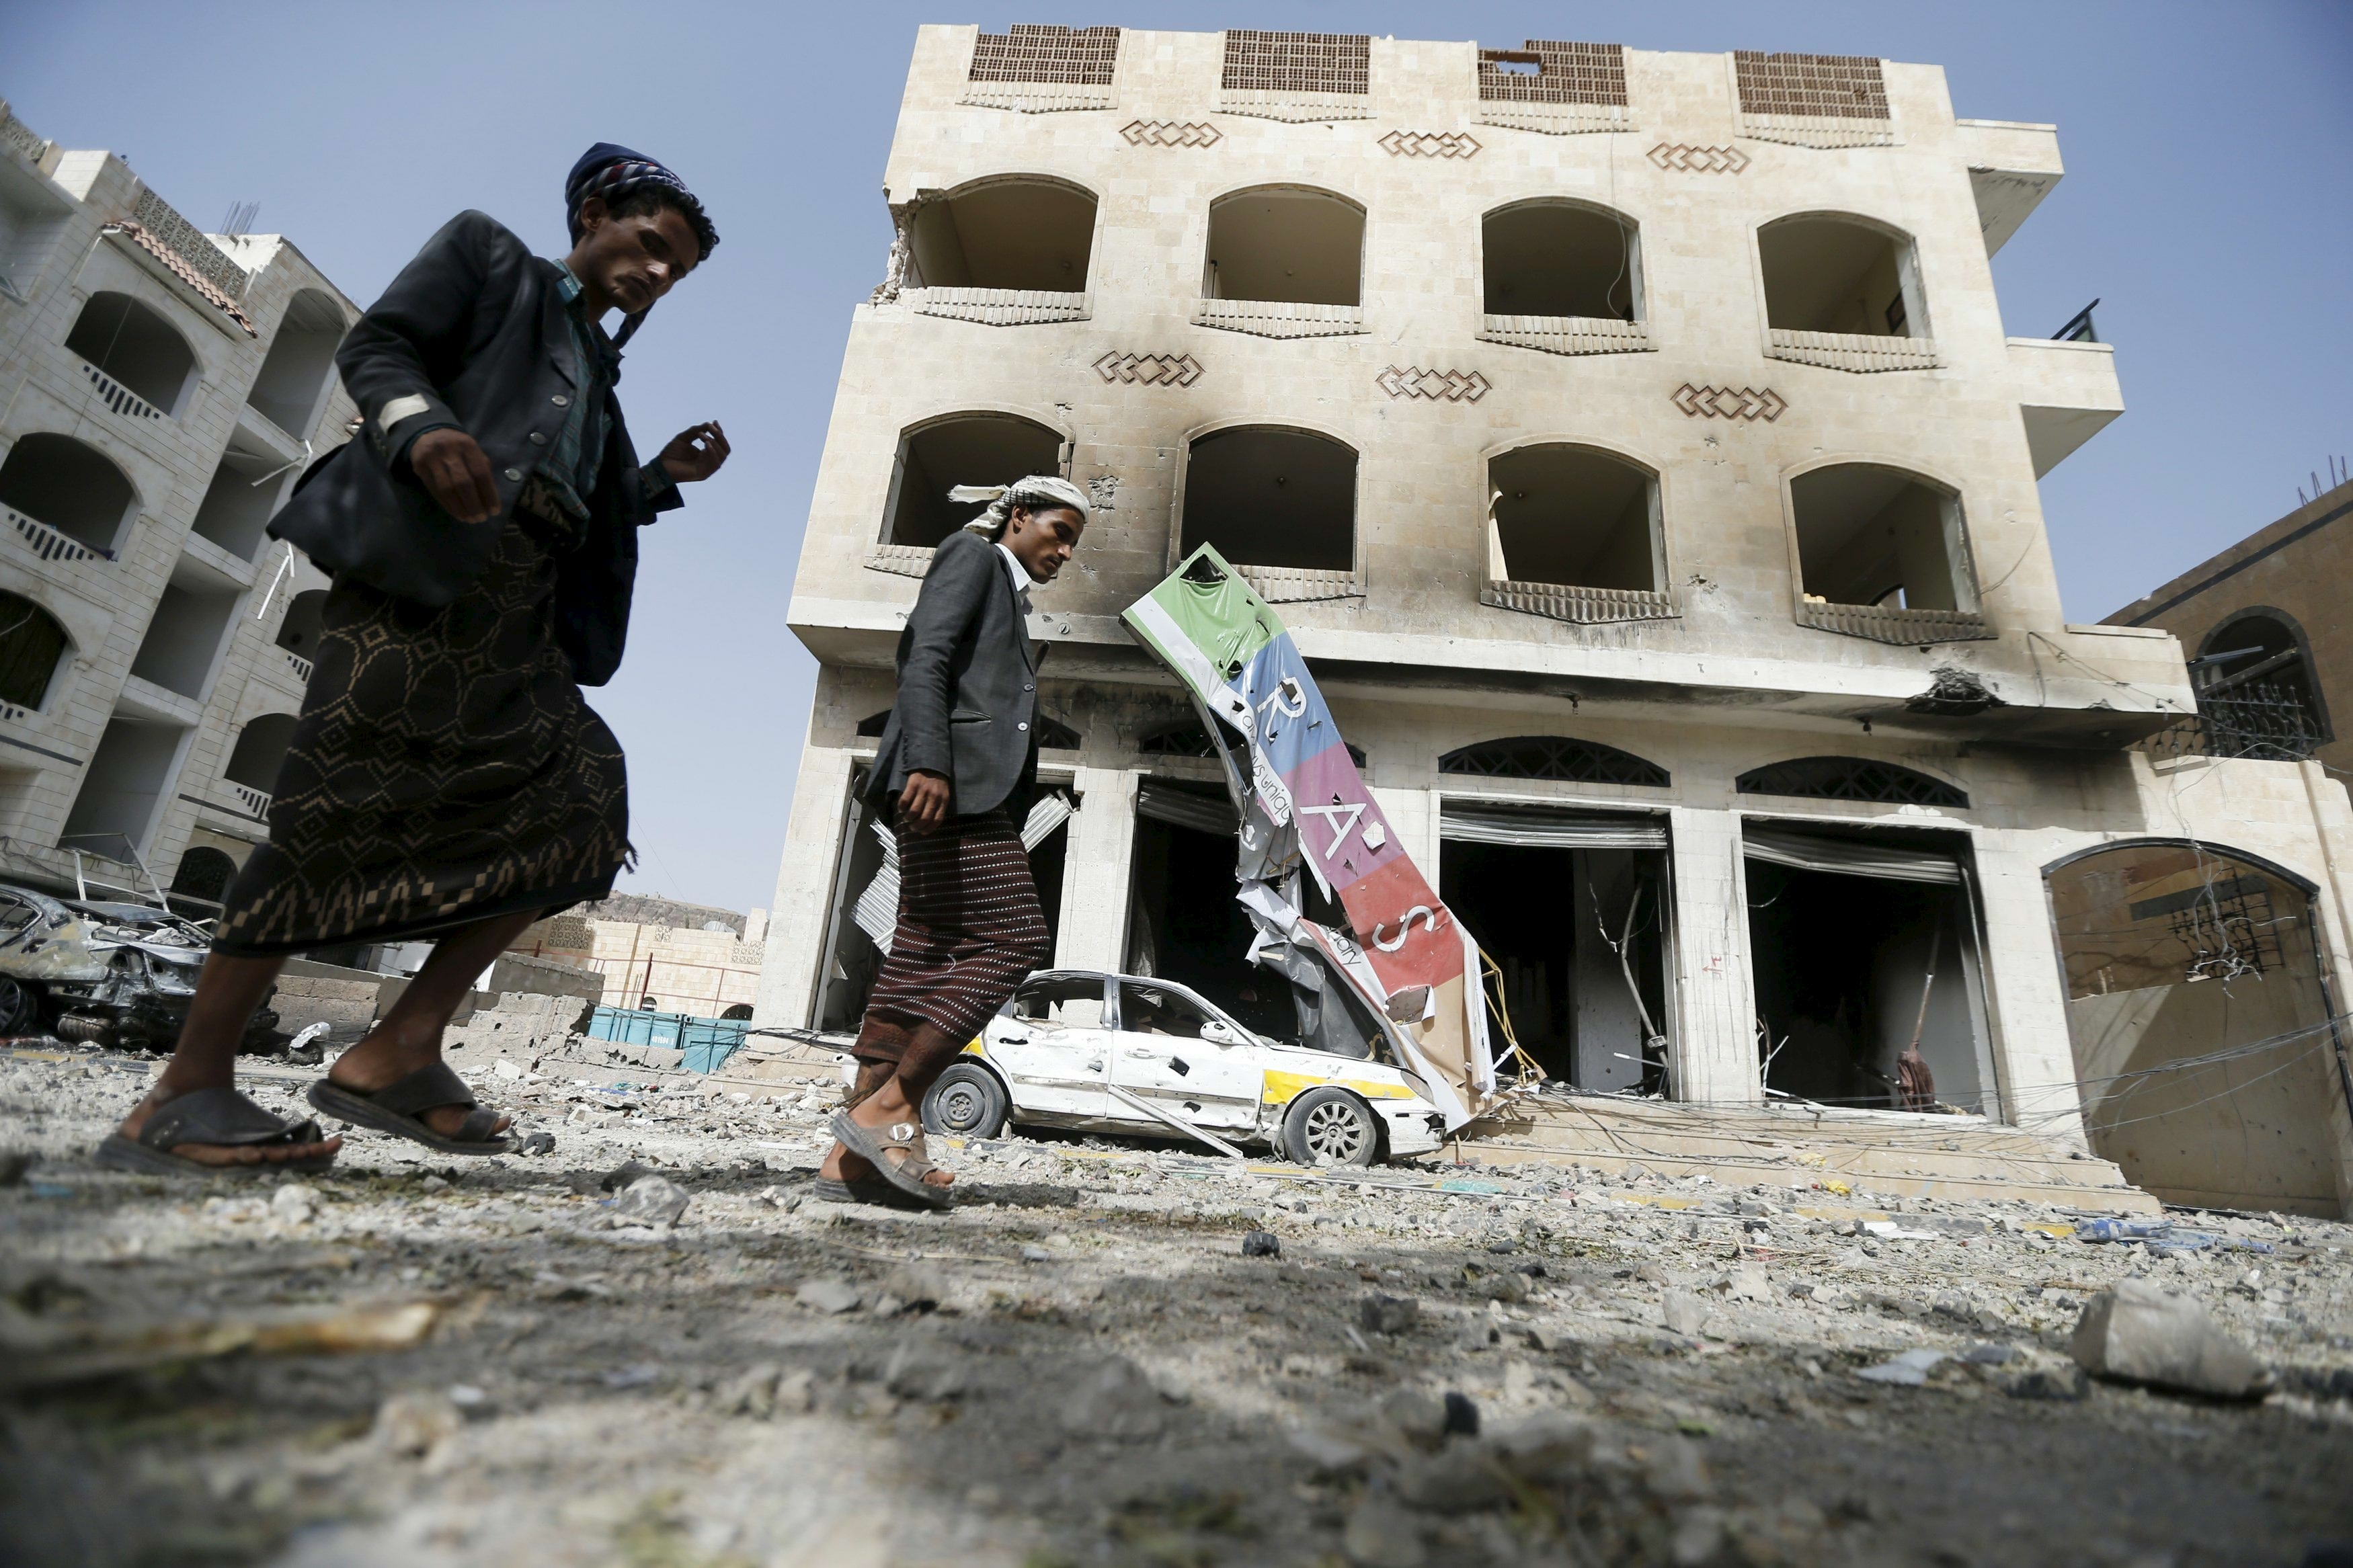 People walk by a building damaged by an air strike on a nearby Scud missile base in Yemen's capital Sanaa